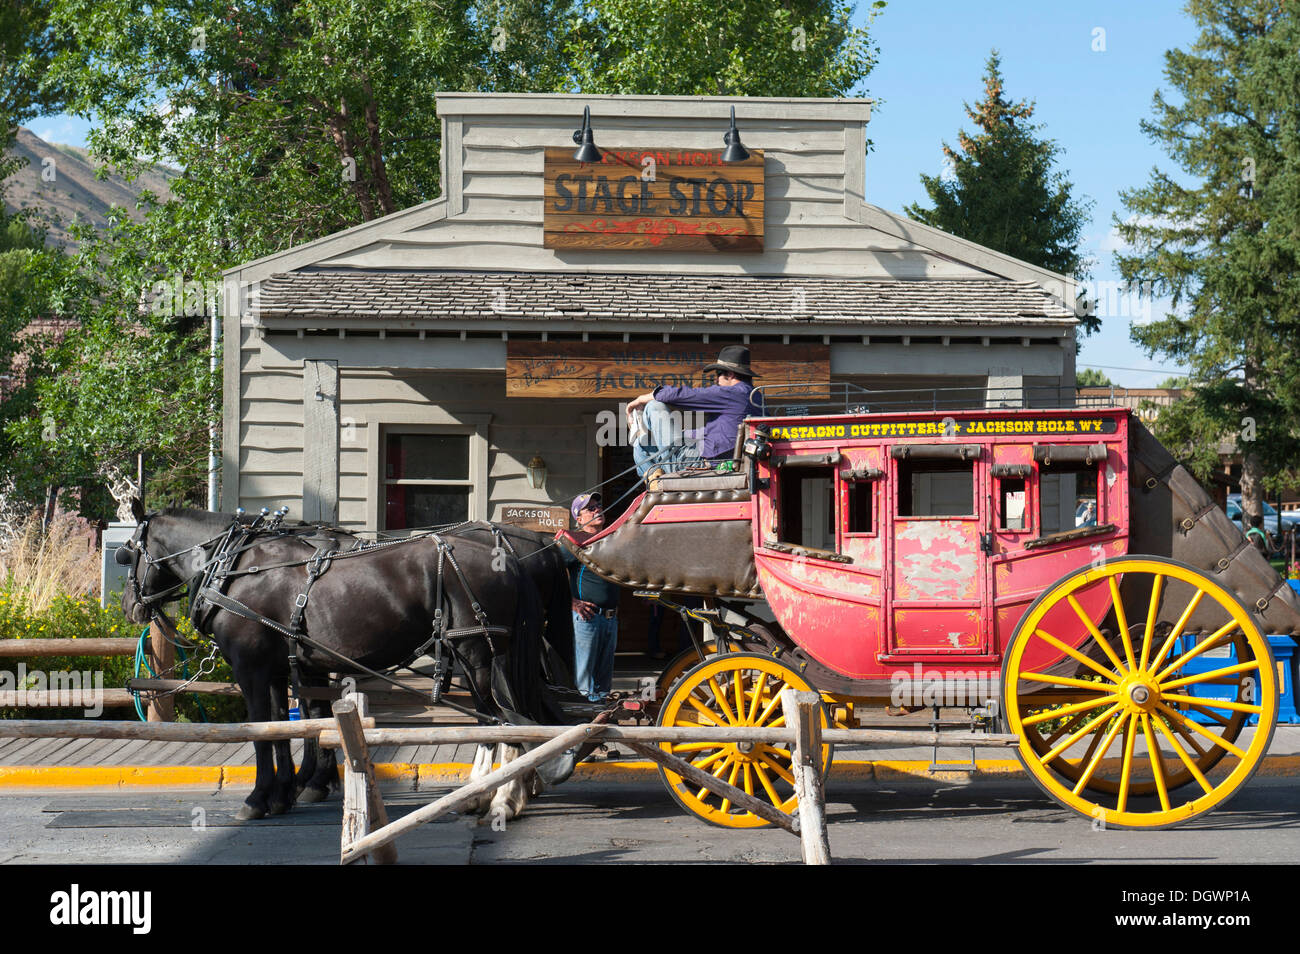 Two horses and coachman on an old stagecoach, Jackson Hole, Wyoming, Western United States, USA, United States of America - Stock Image